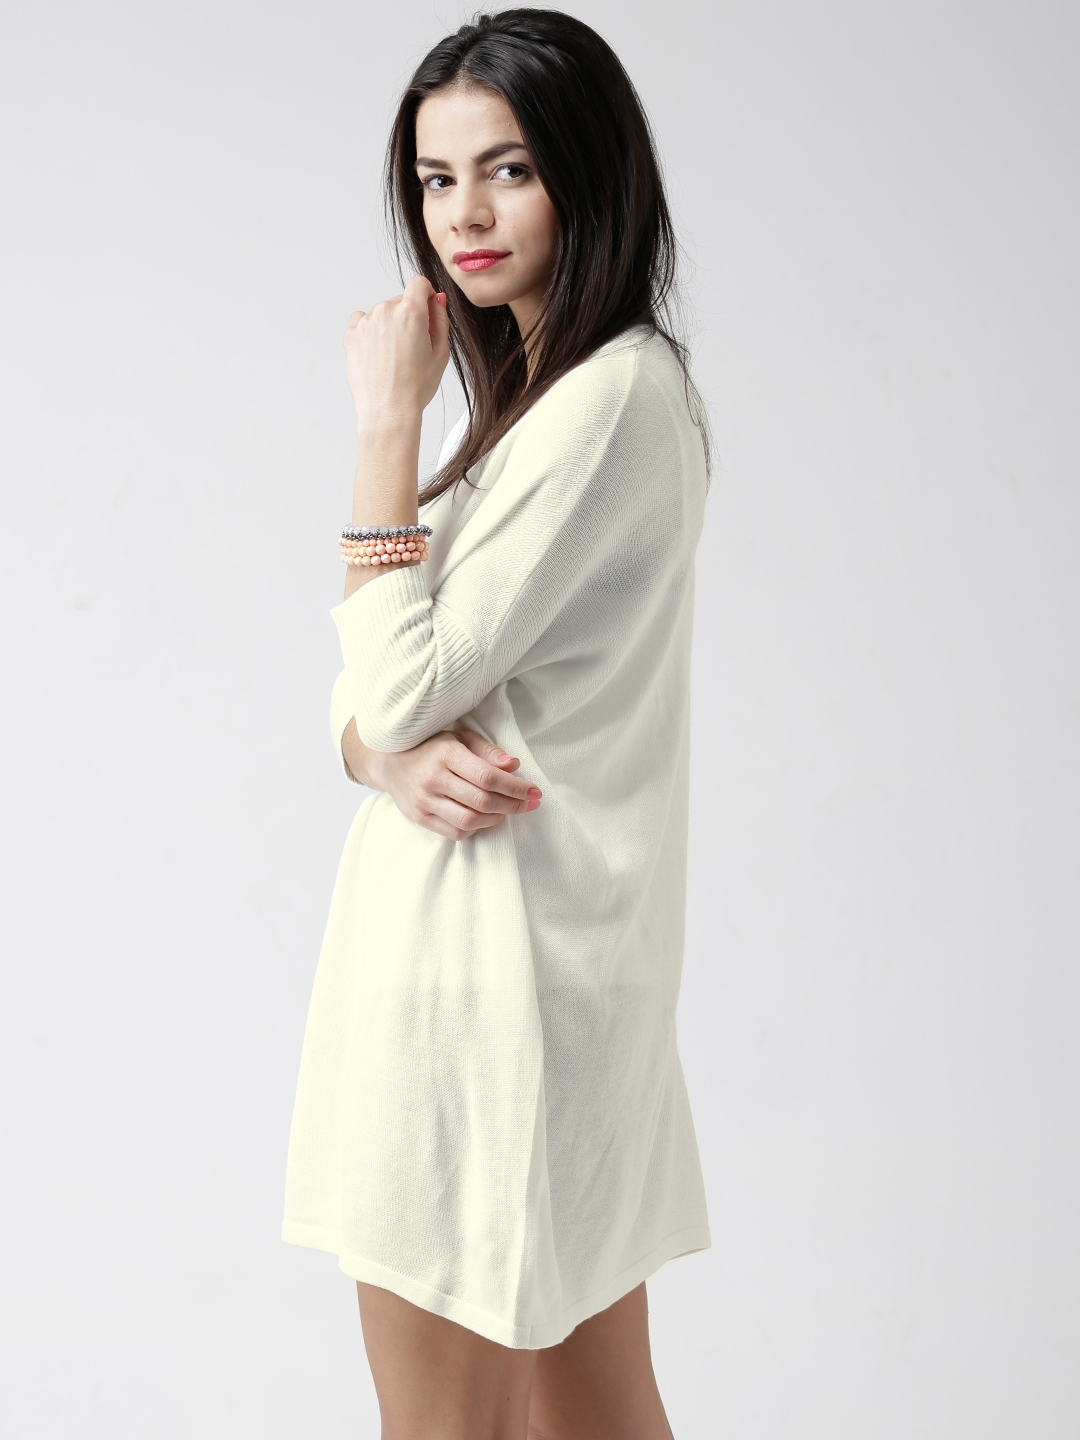 Buy Forever 21 Cream Coloured Sweater Dress Dresses For Women